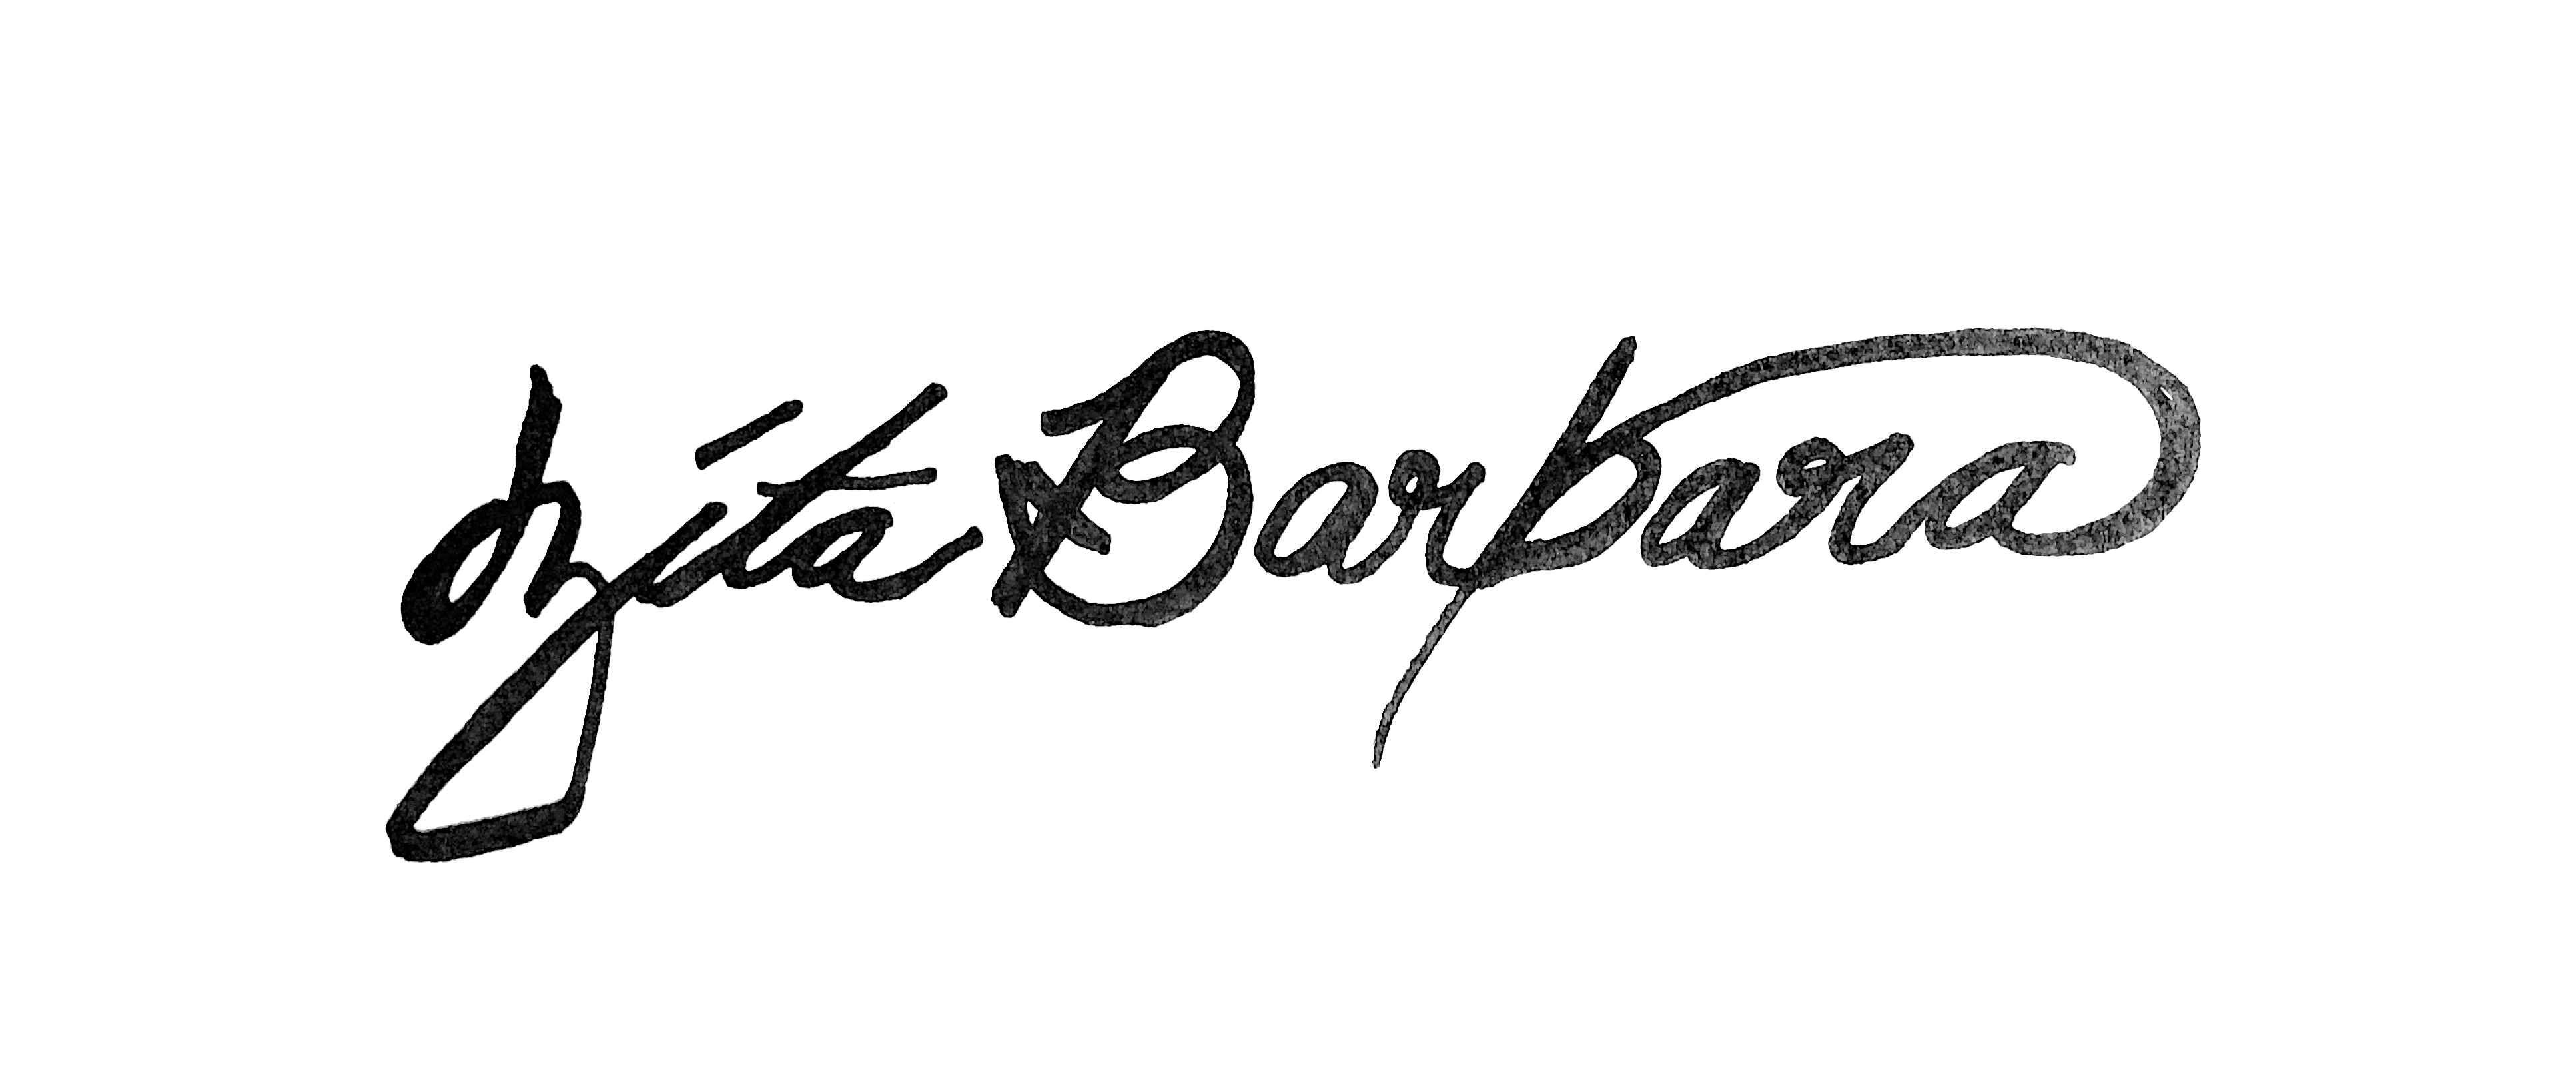 Zita Barbara's Signature